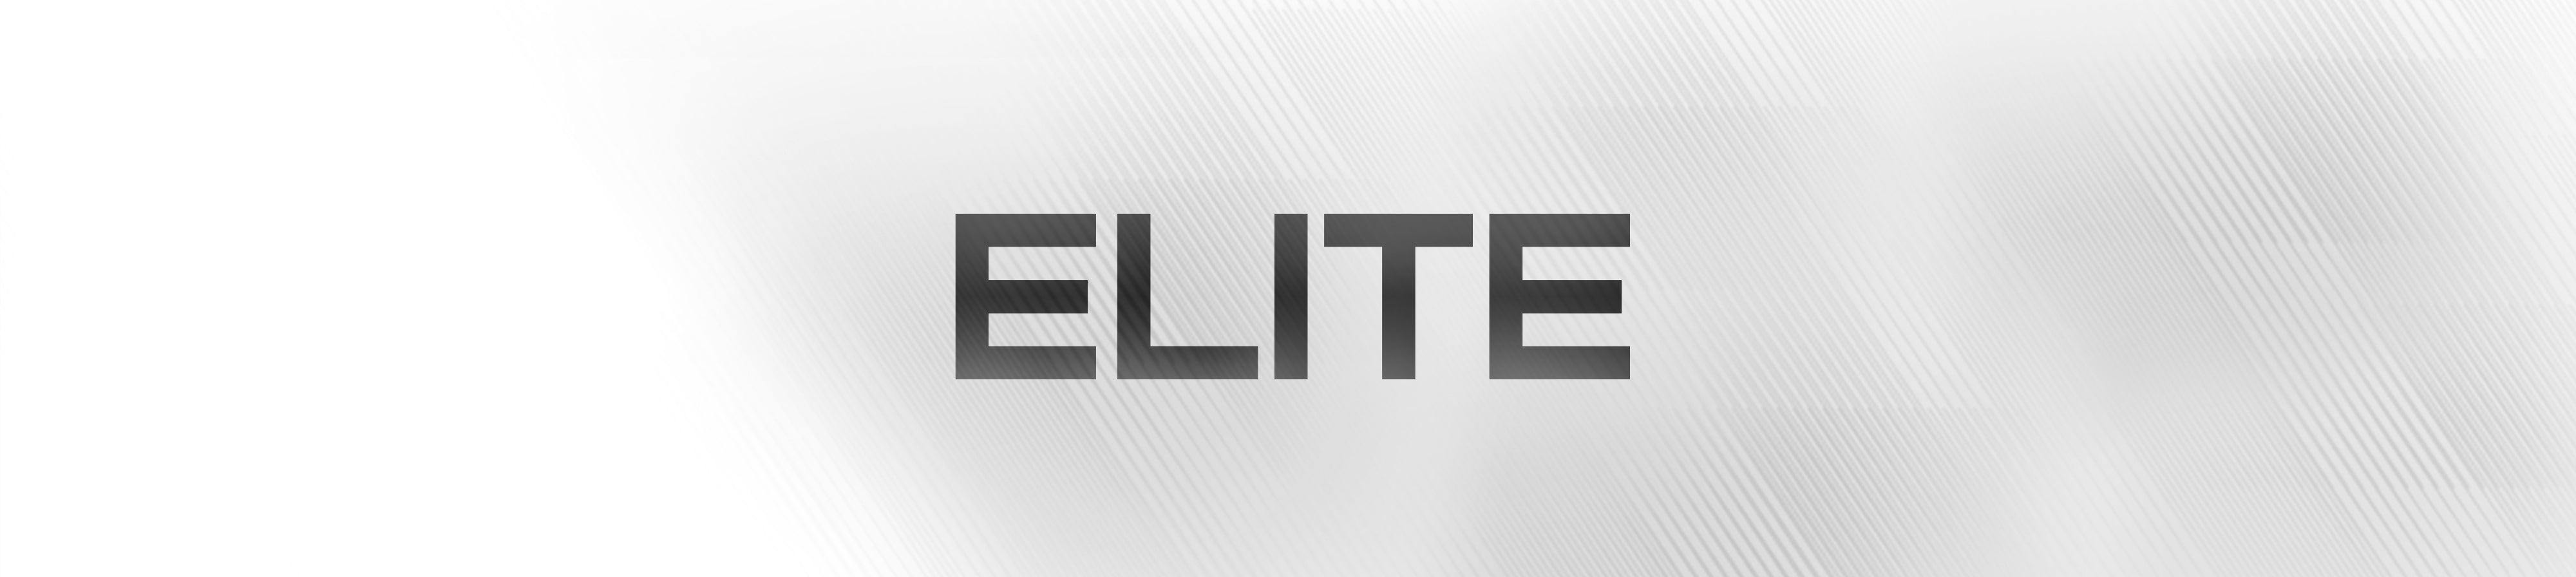 PlayStation Elite